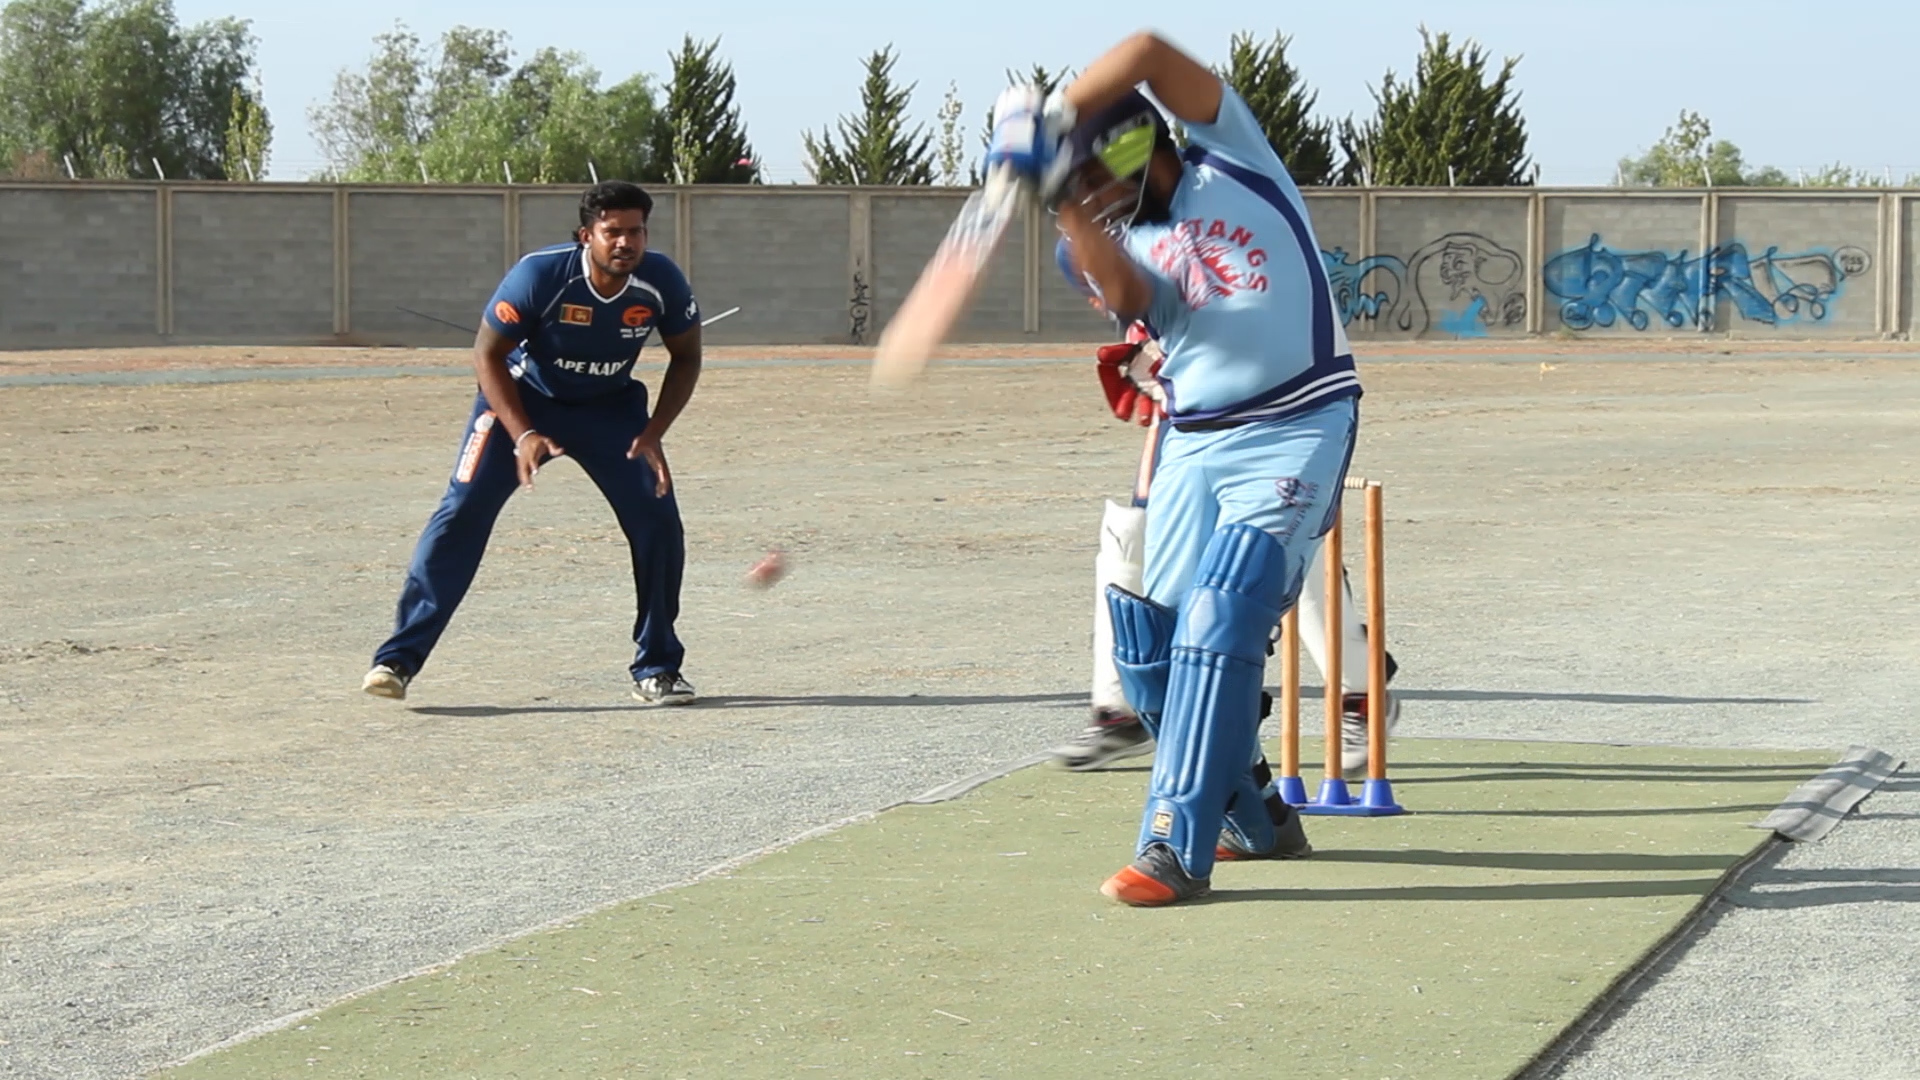 training-cricket-championship-rushes-01_12_35_16-still046